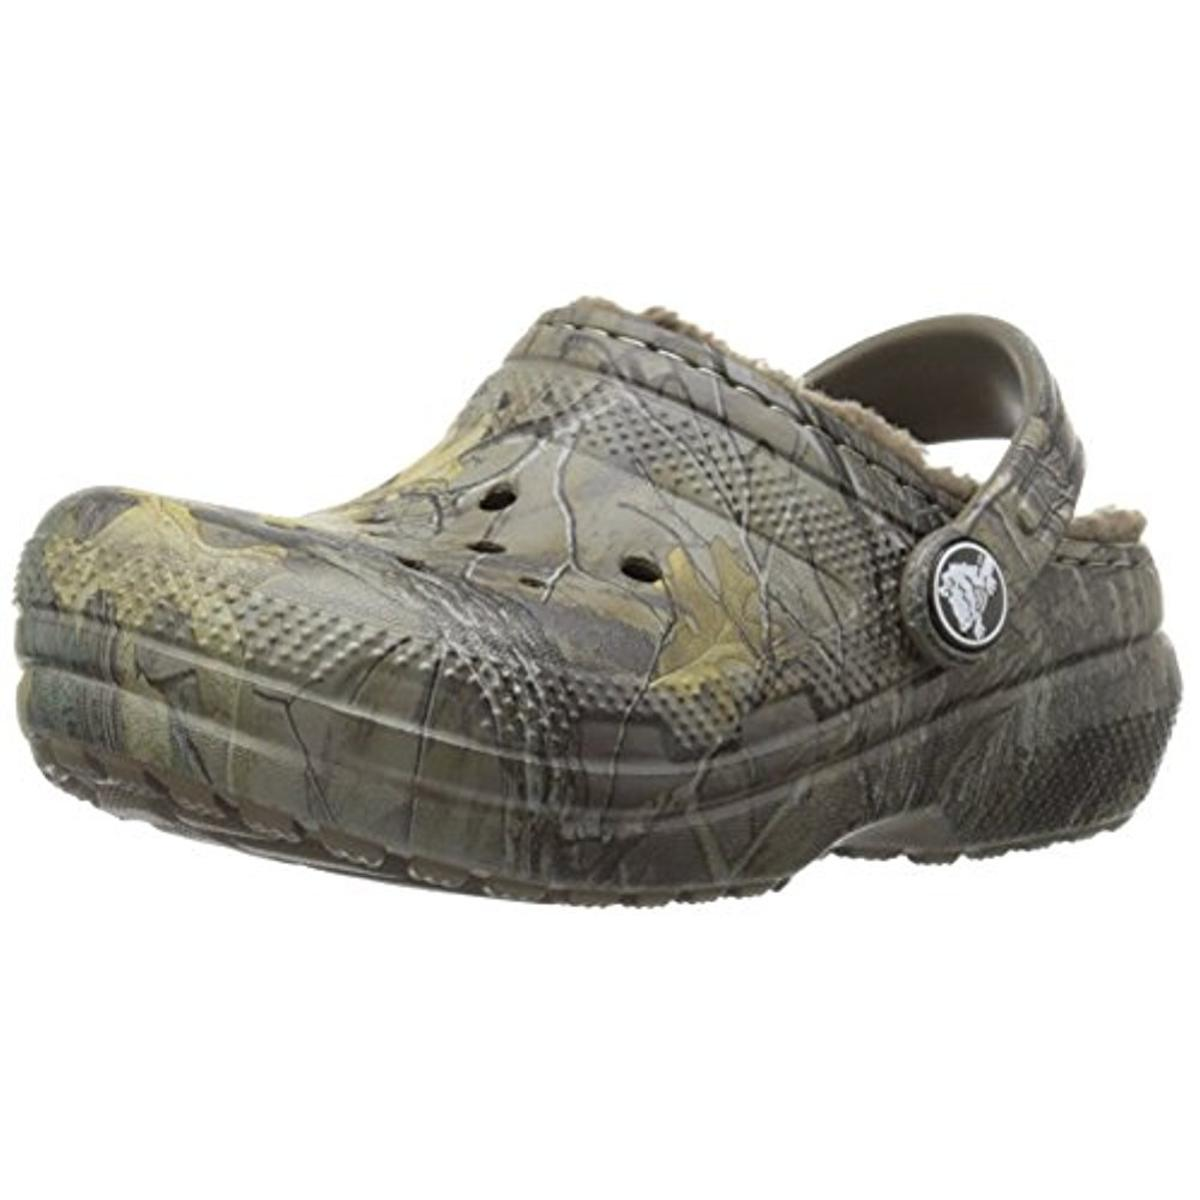 Crocs Boys Classic Realtree Xtra Lined Camouflage Clogs by Crocs